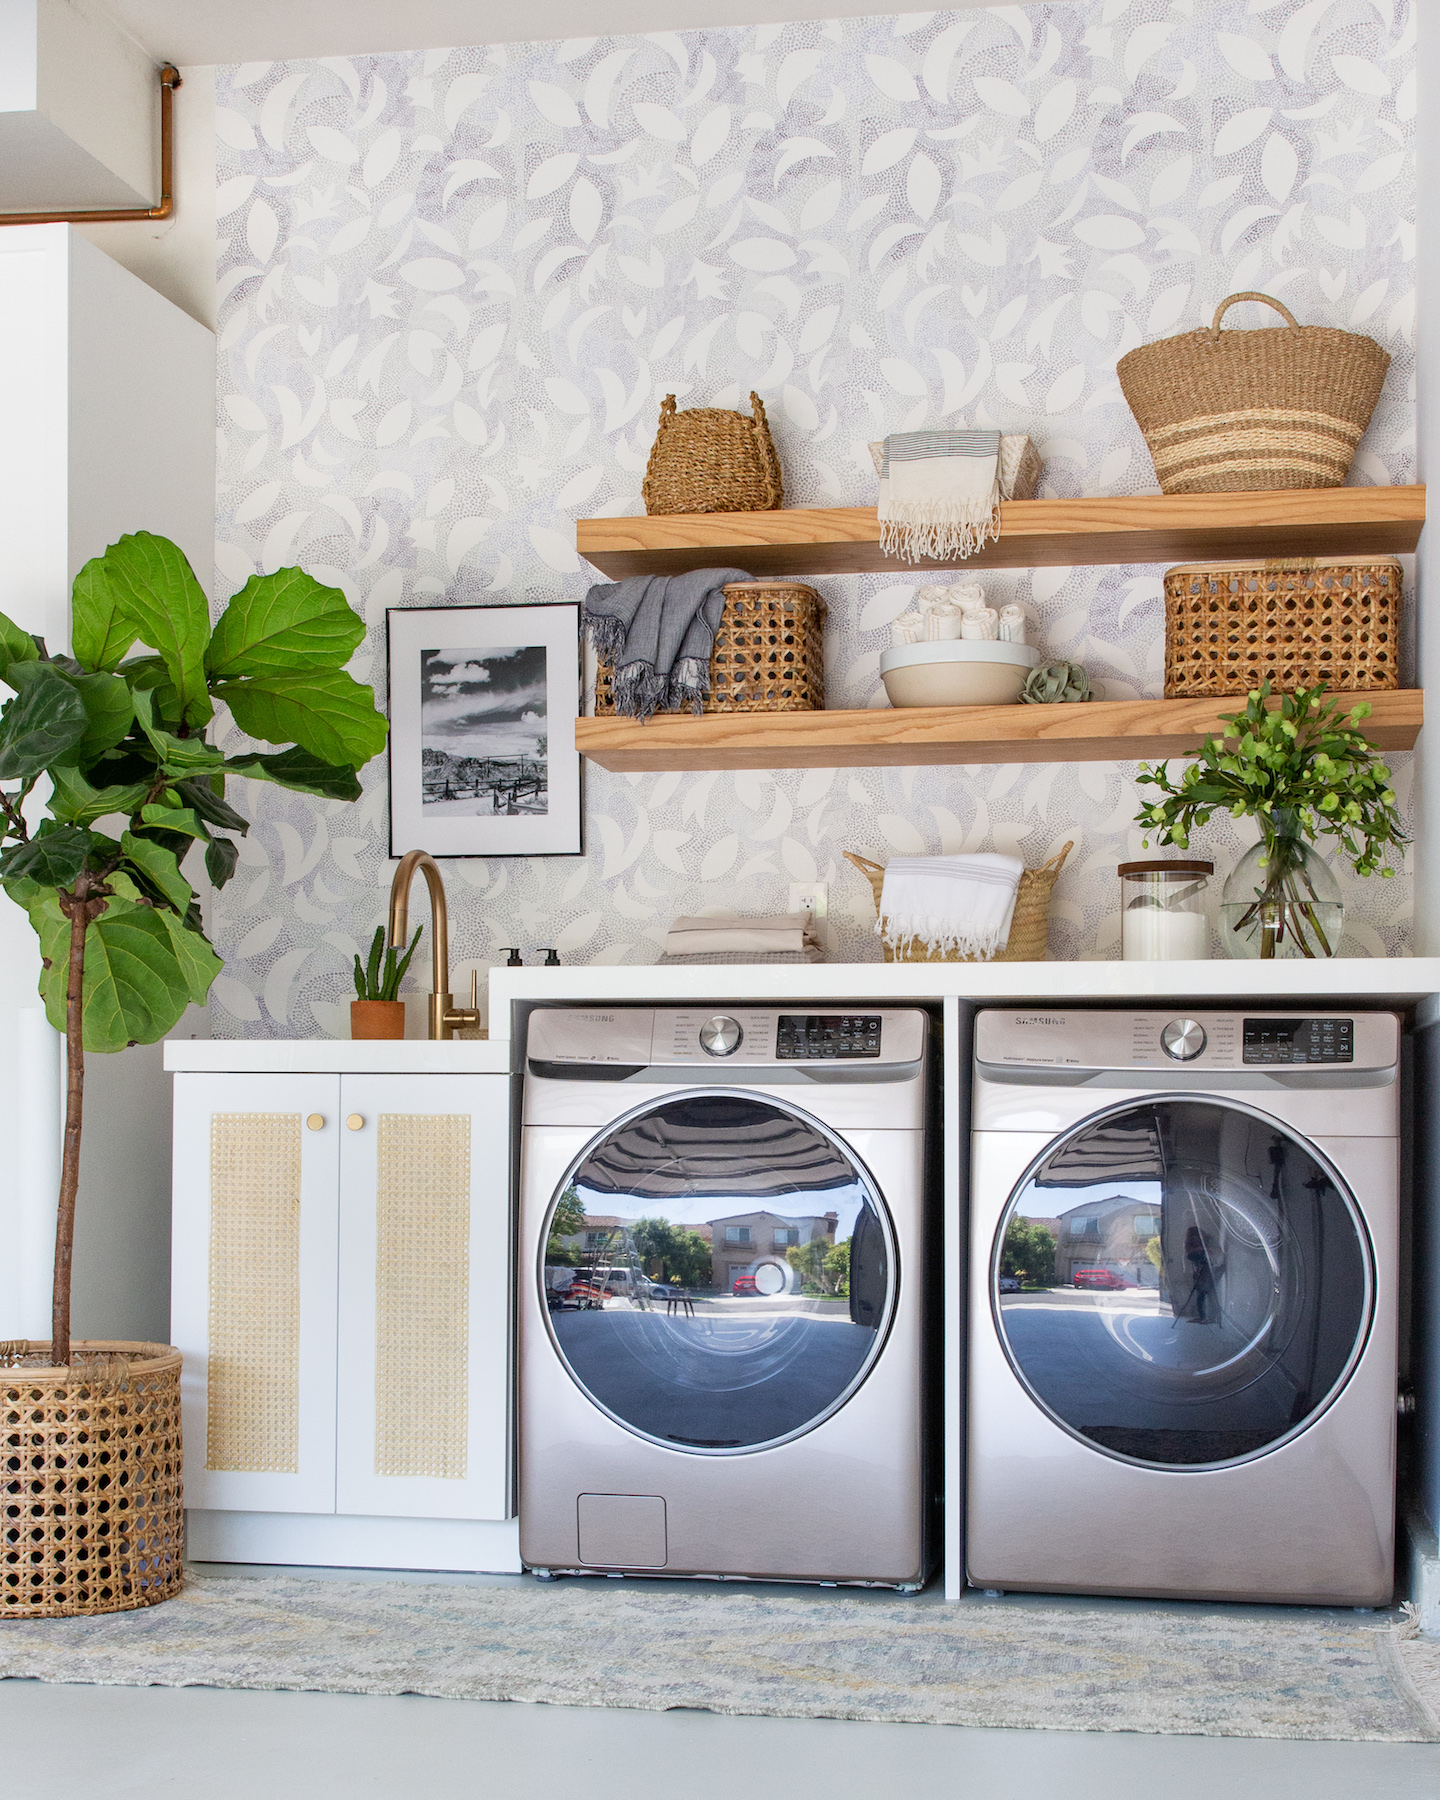 Design Ideas From a Gorgeous Garage-Turned-Laundry Room  Real Simple